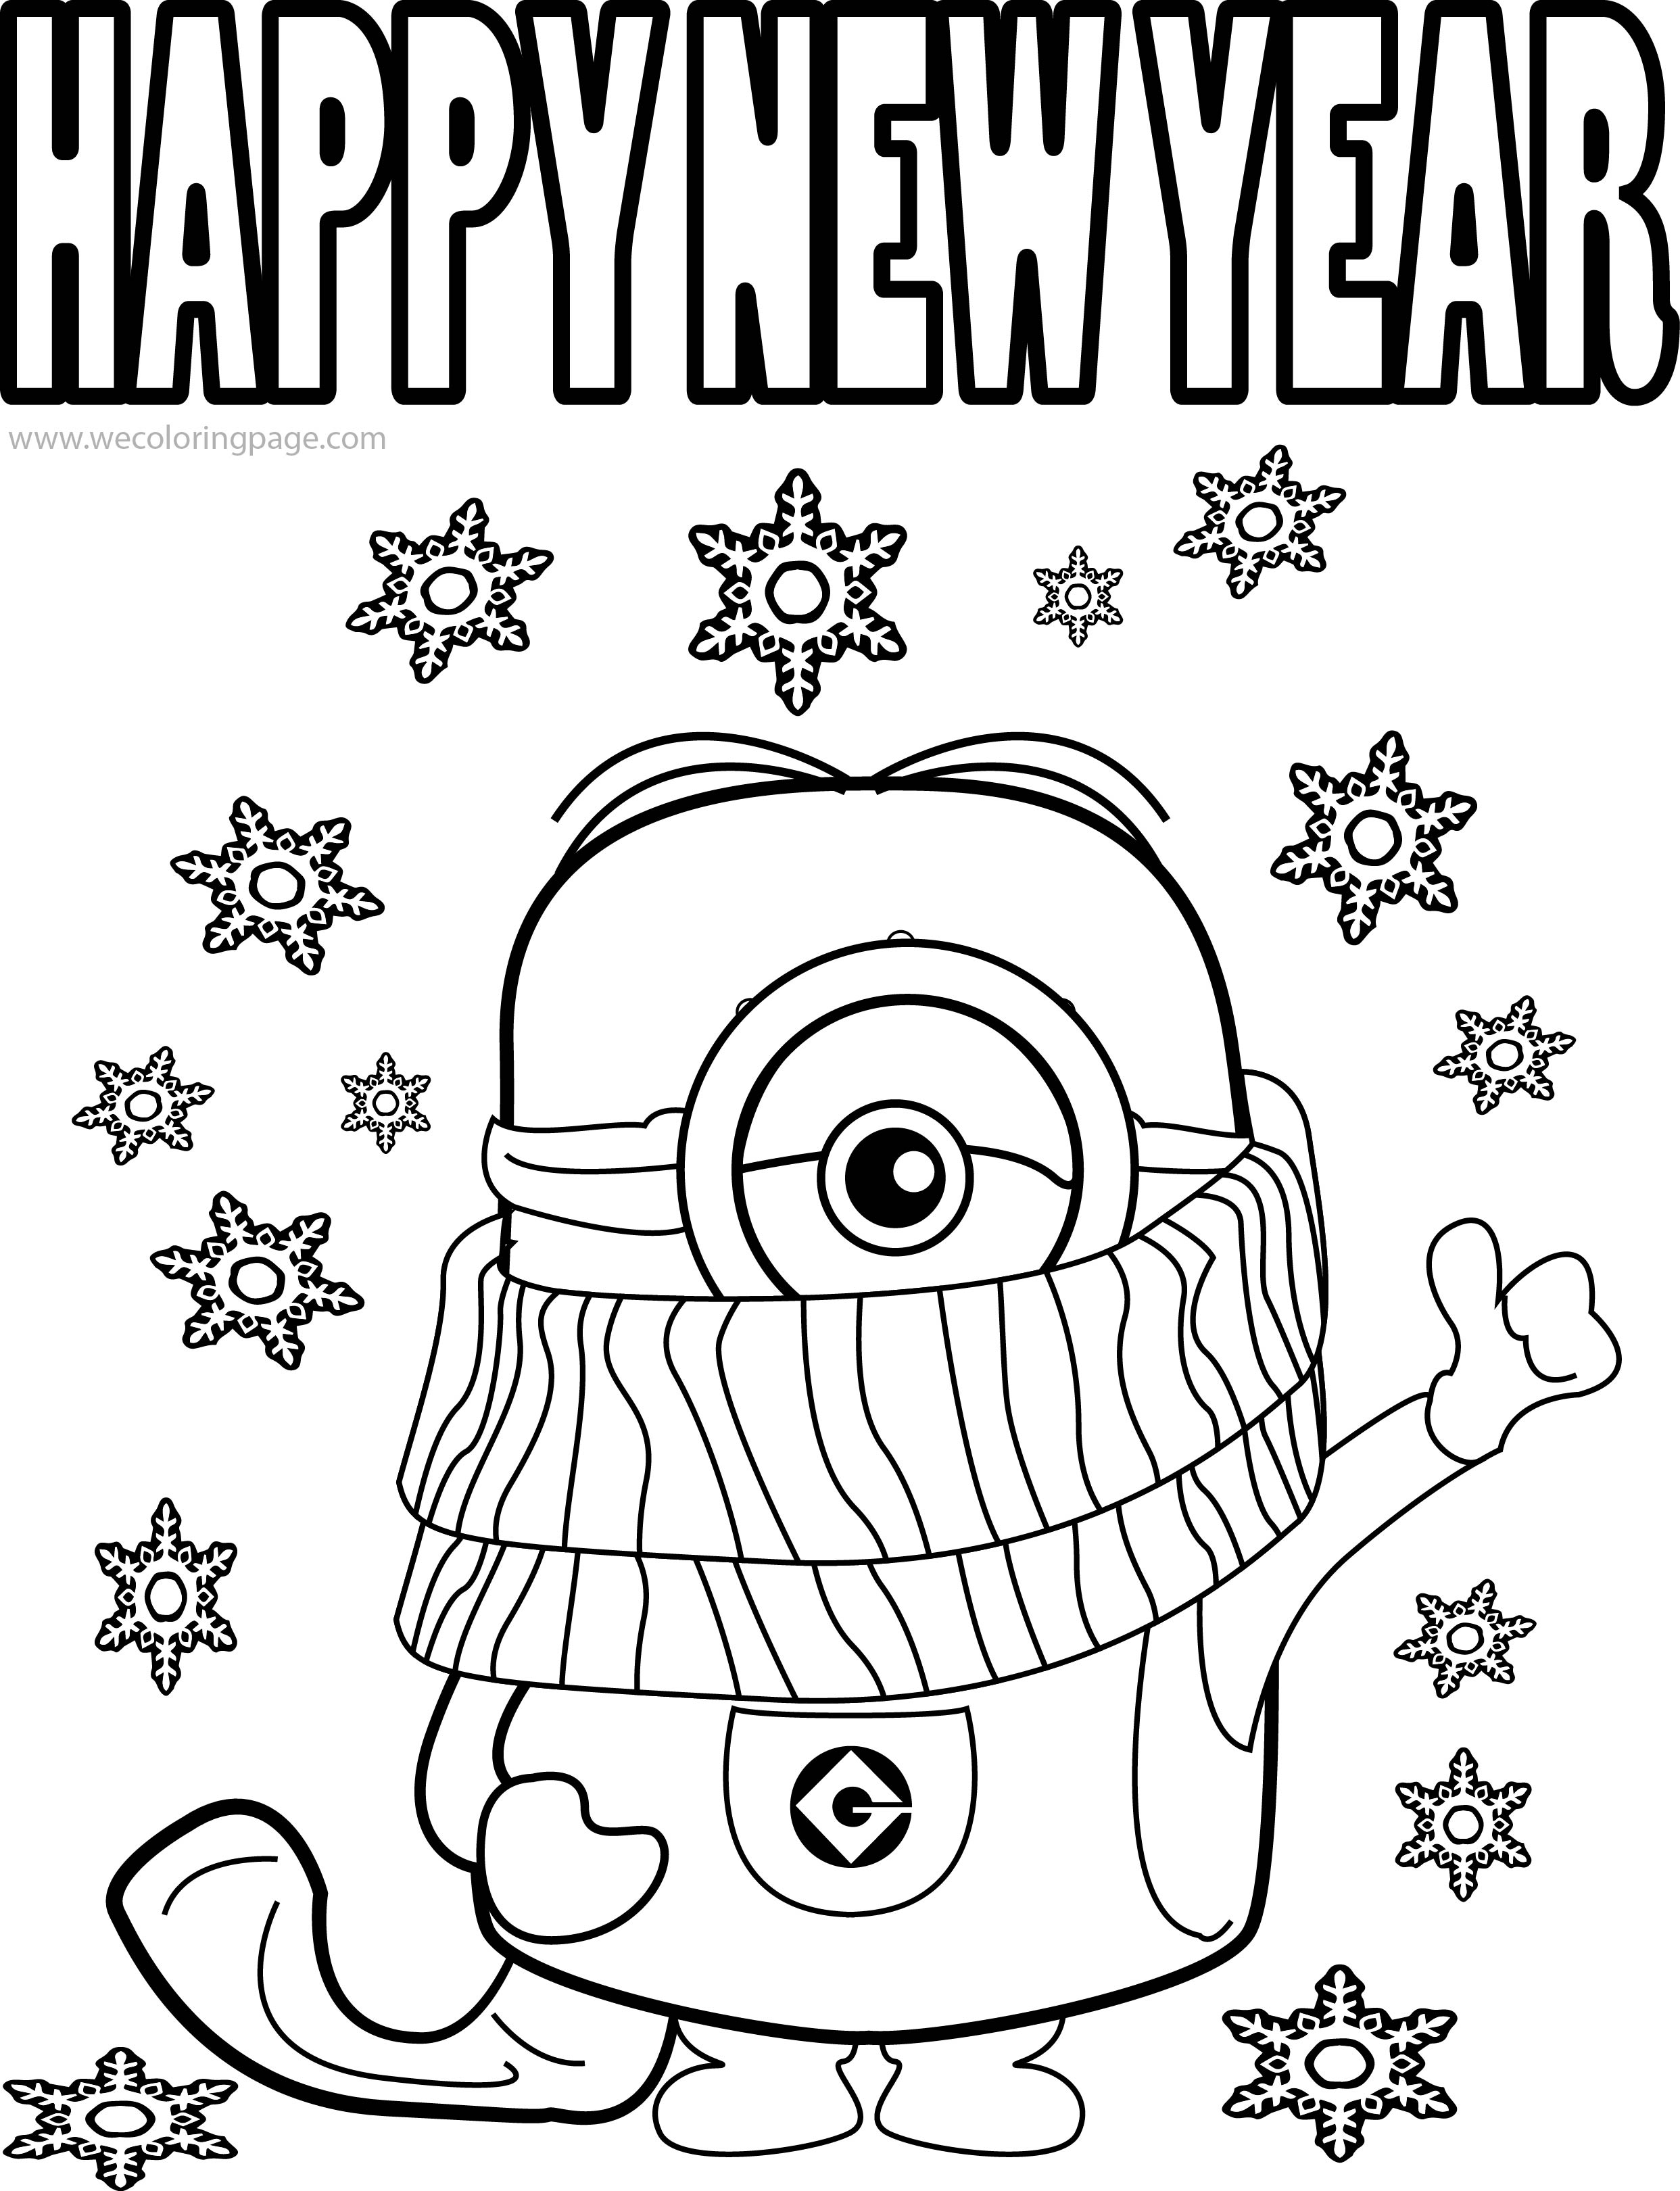 Happy New Year Coloring Pages Best Funny Minions Quotes And Picture Cold Weather Happy New Year